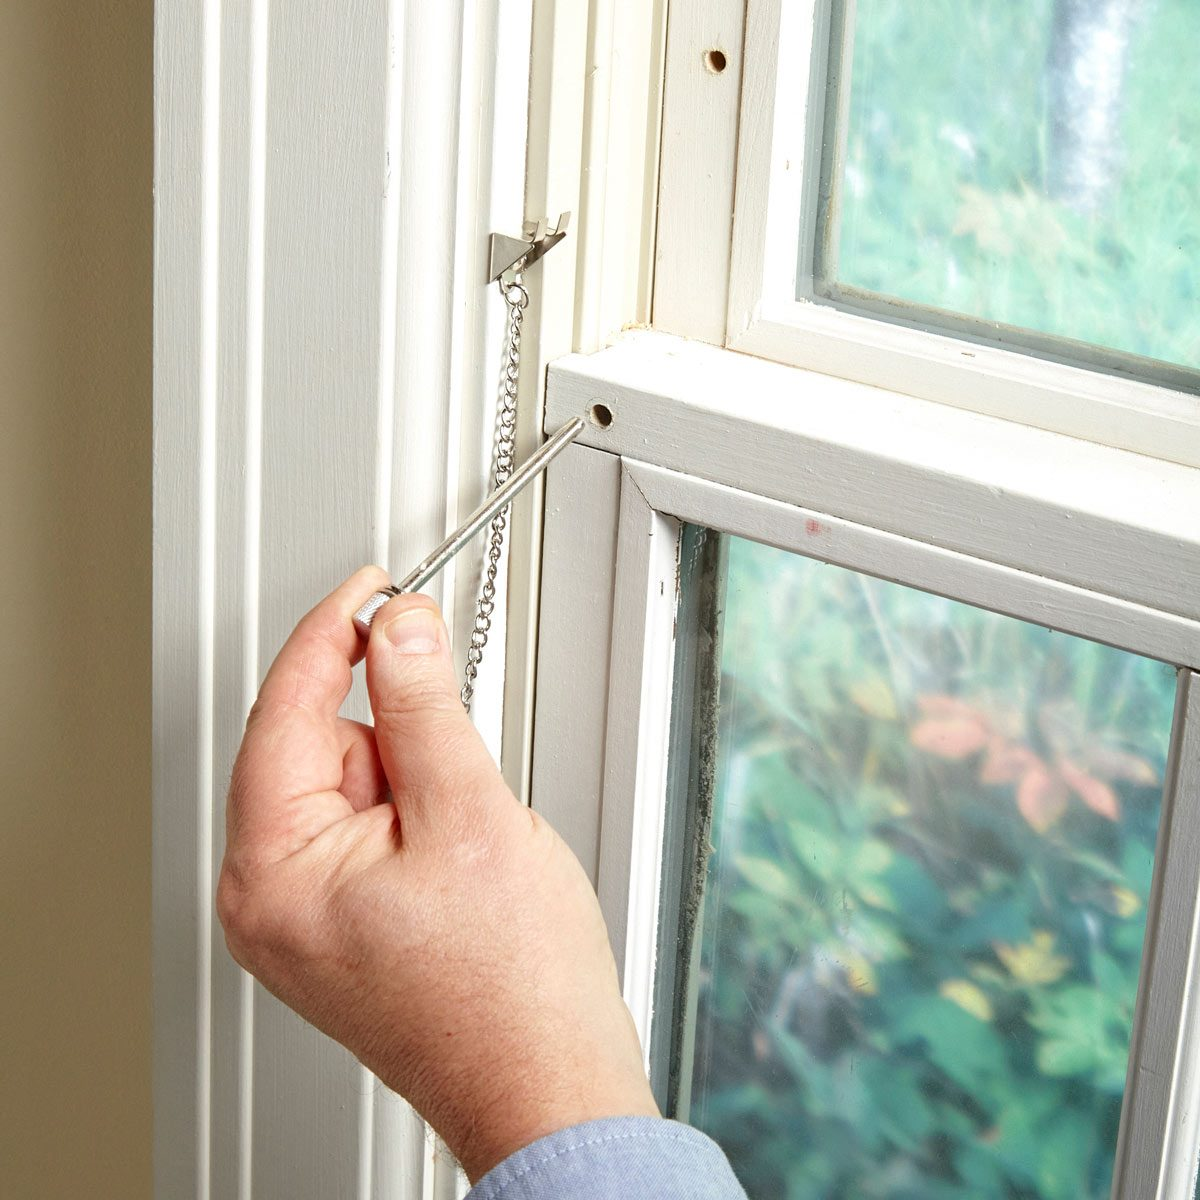 DIY Simple Window Locks to Keep Your Home Safe